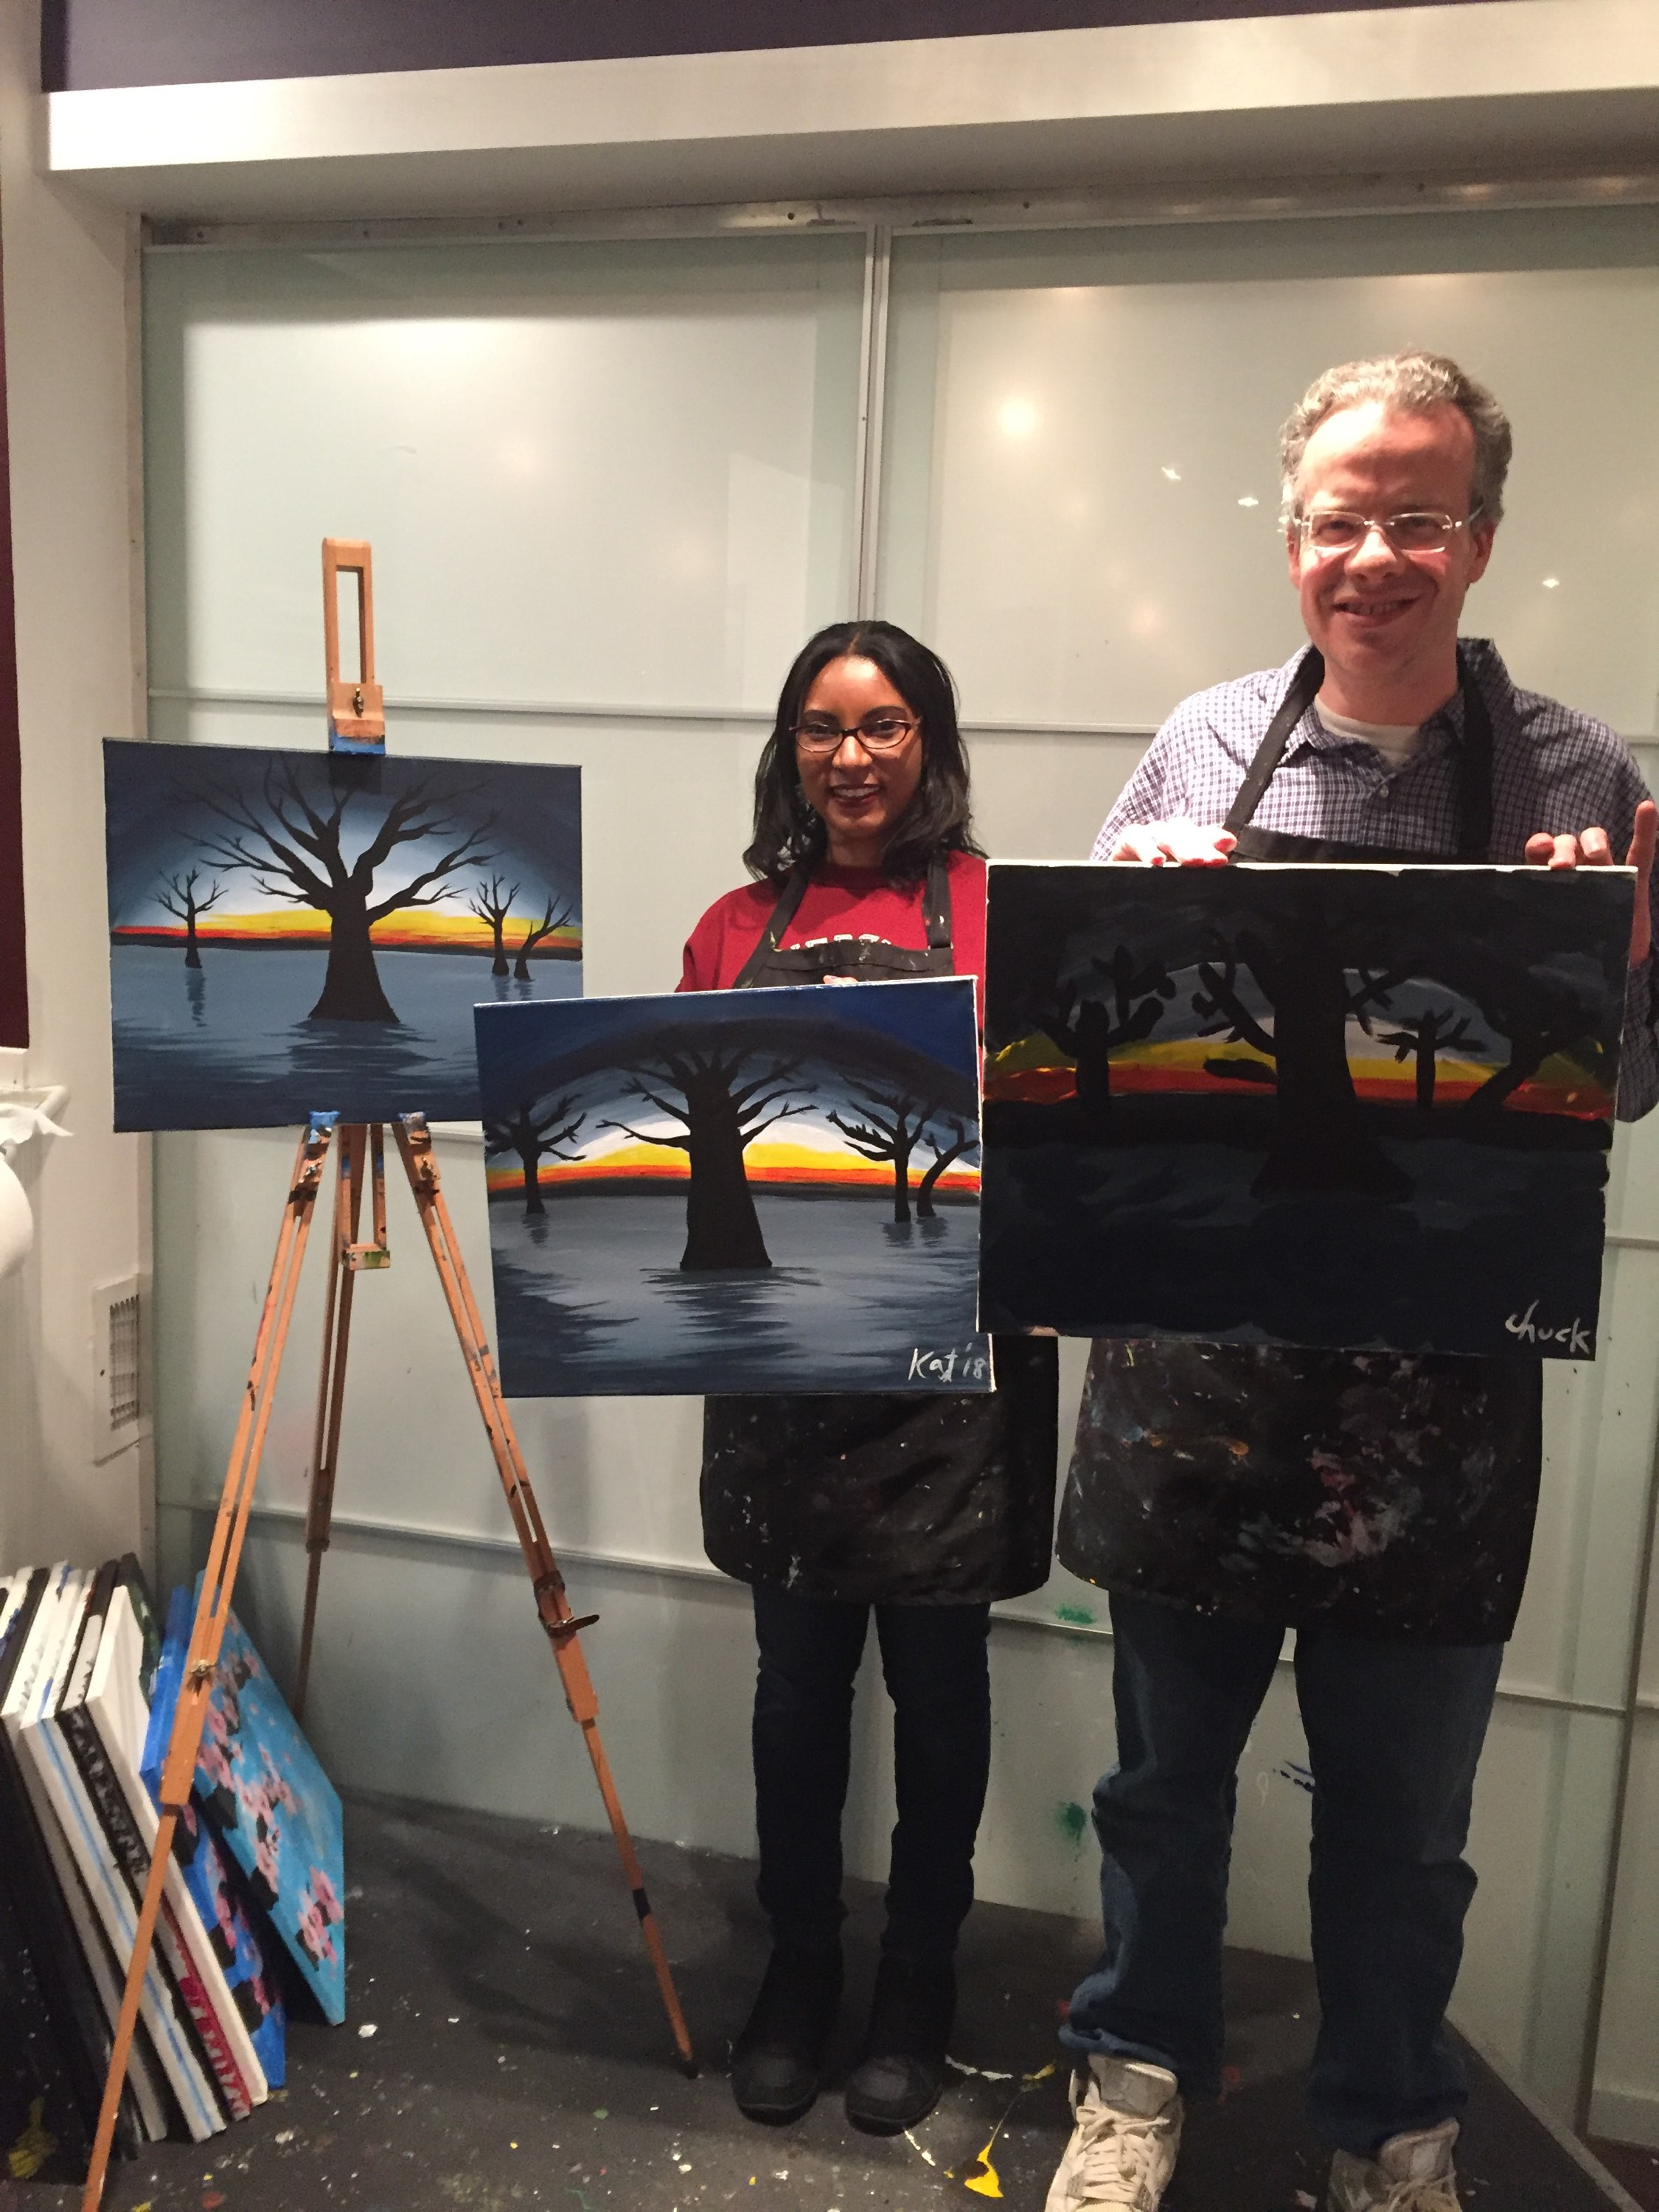 Exploring new experiences together at a local paint and sip class